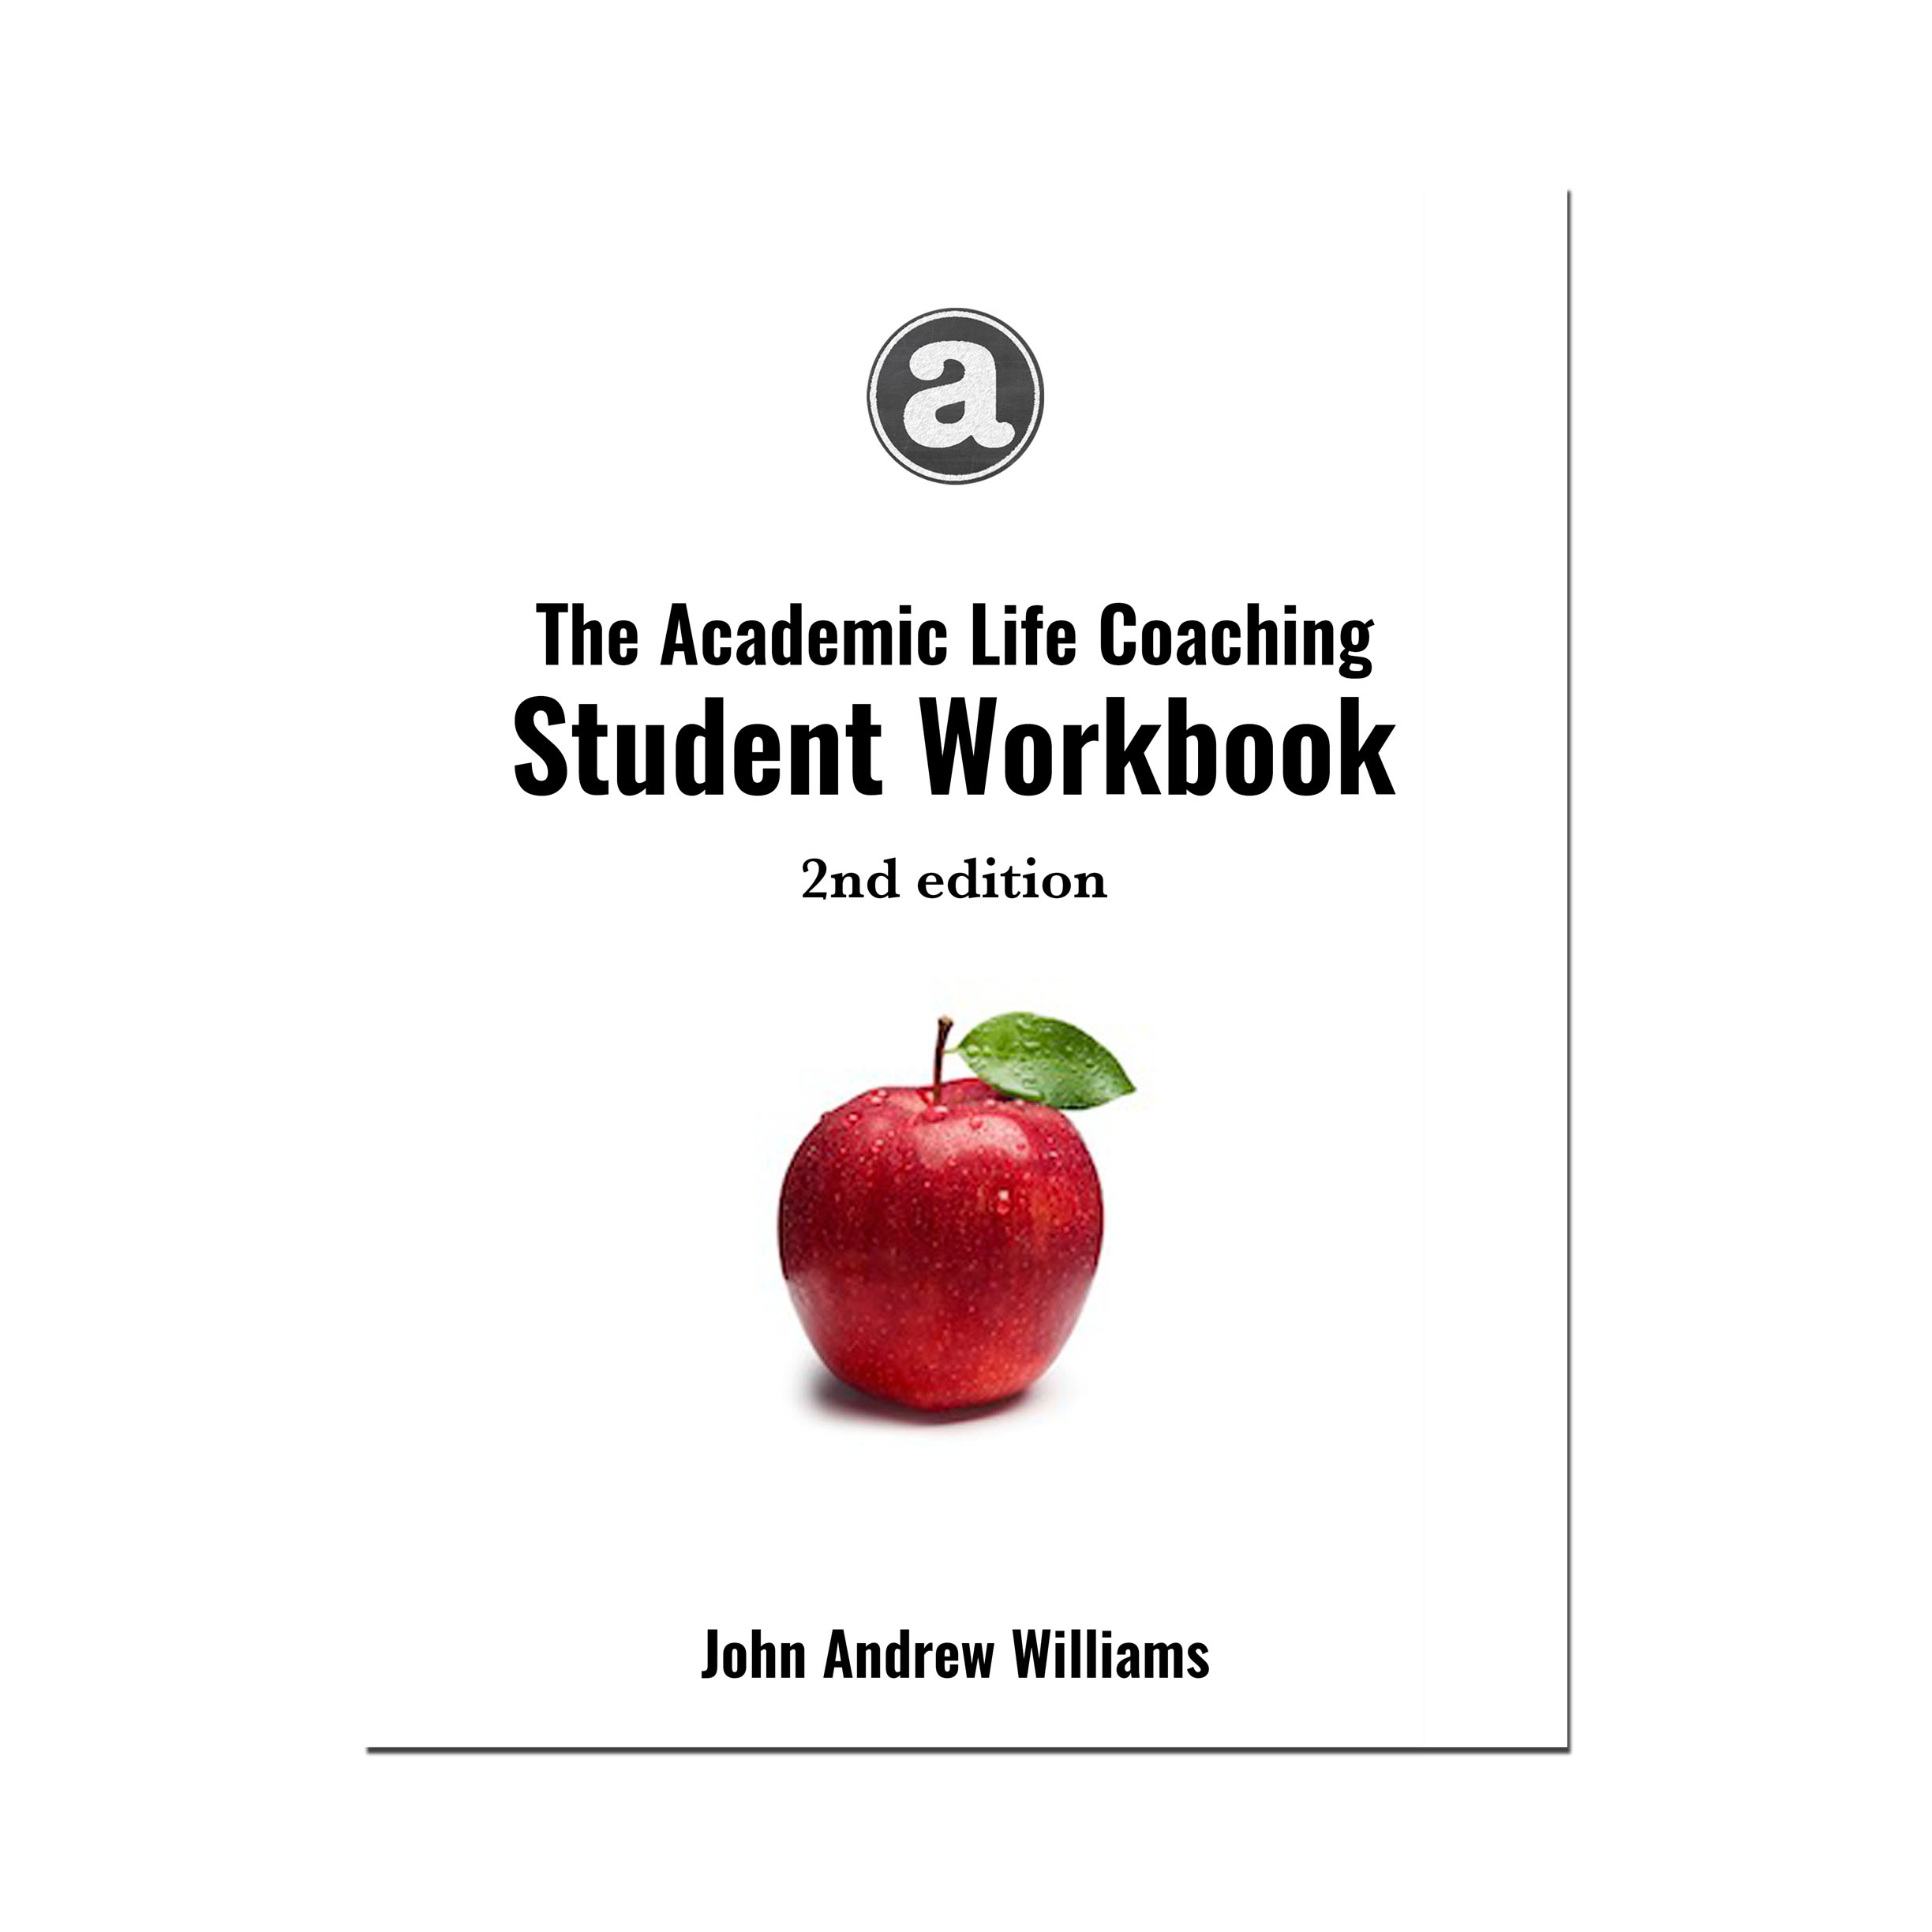 The ALC Student Workbook 2nd edition